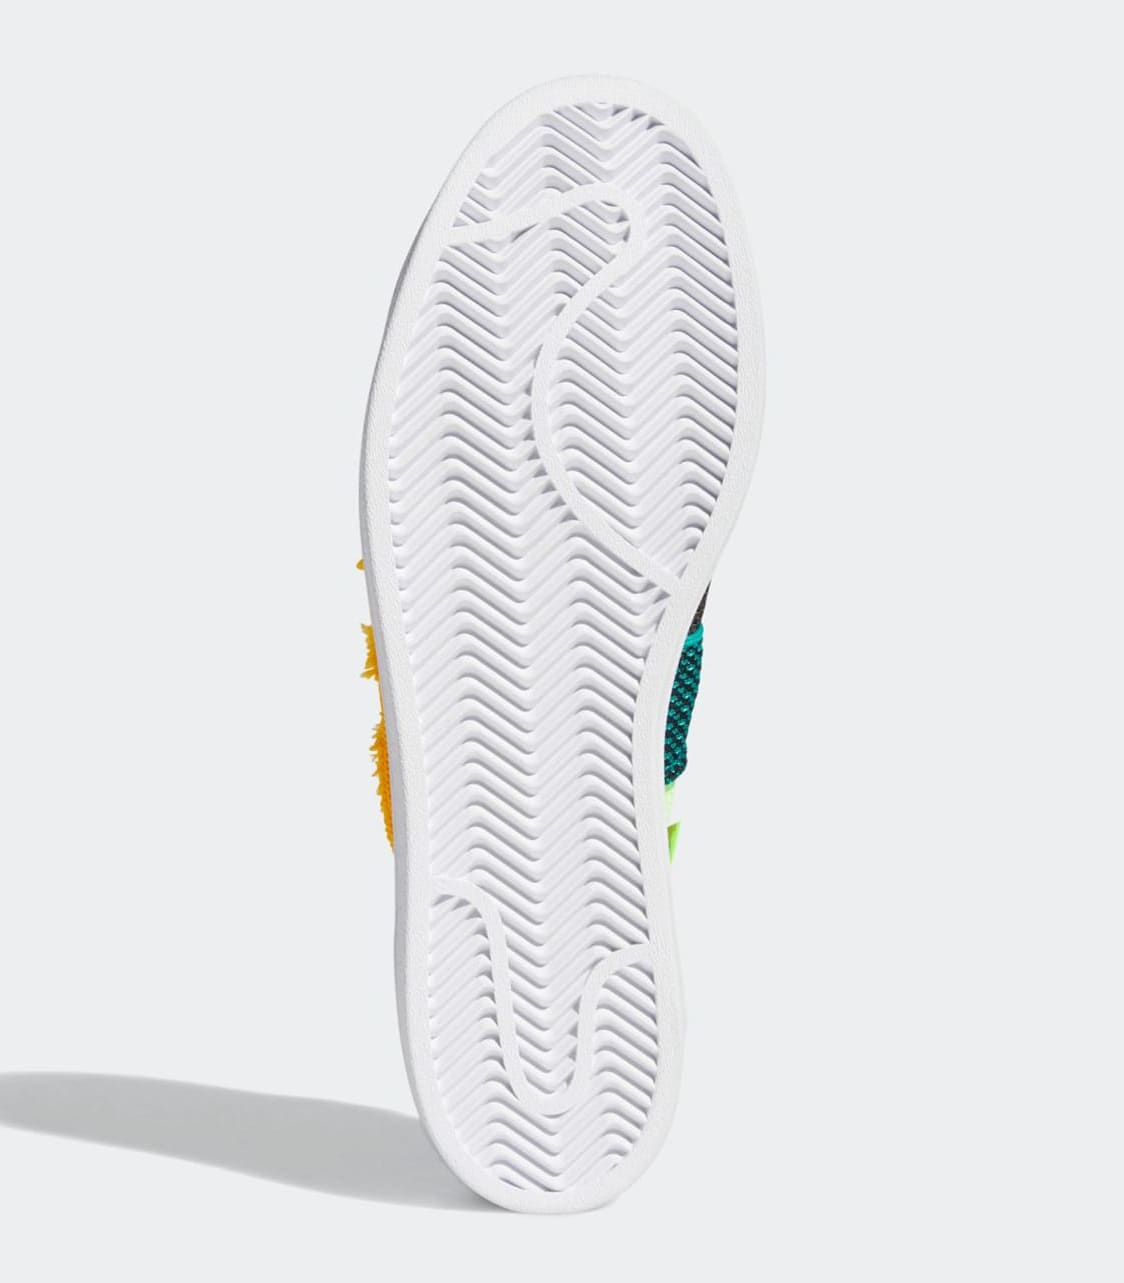 Pharrell Williams x Adidas Superstar White FY2294 Outsole